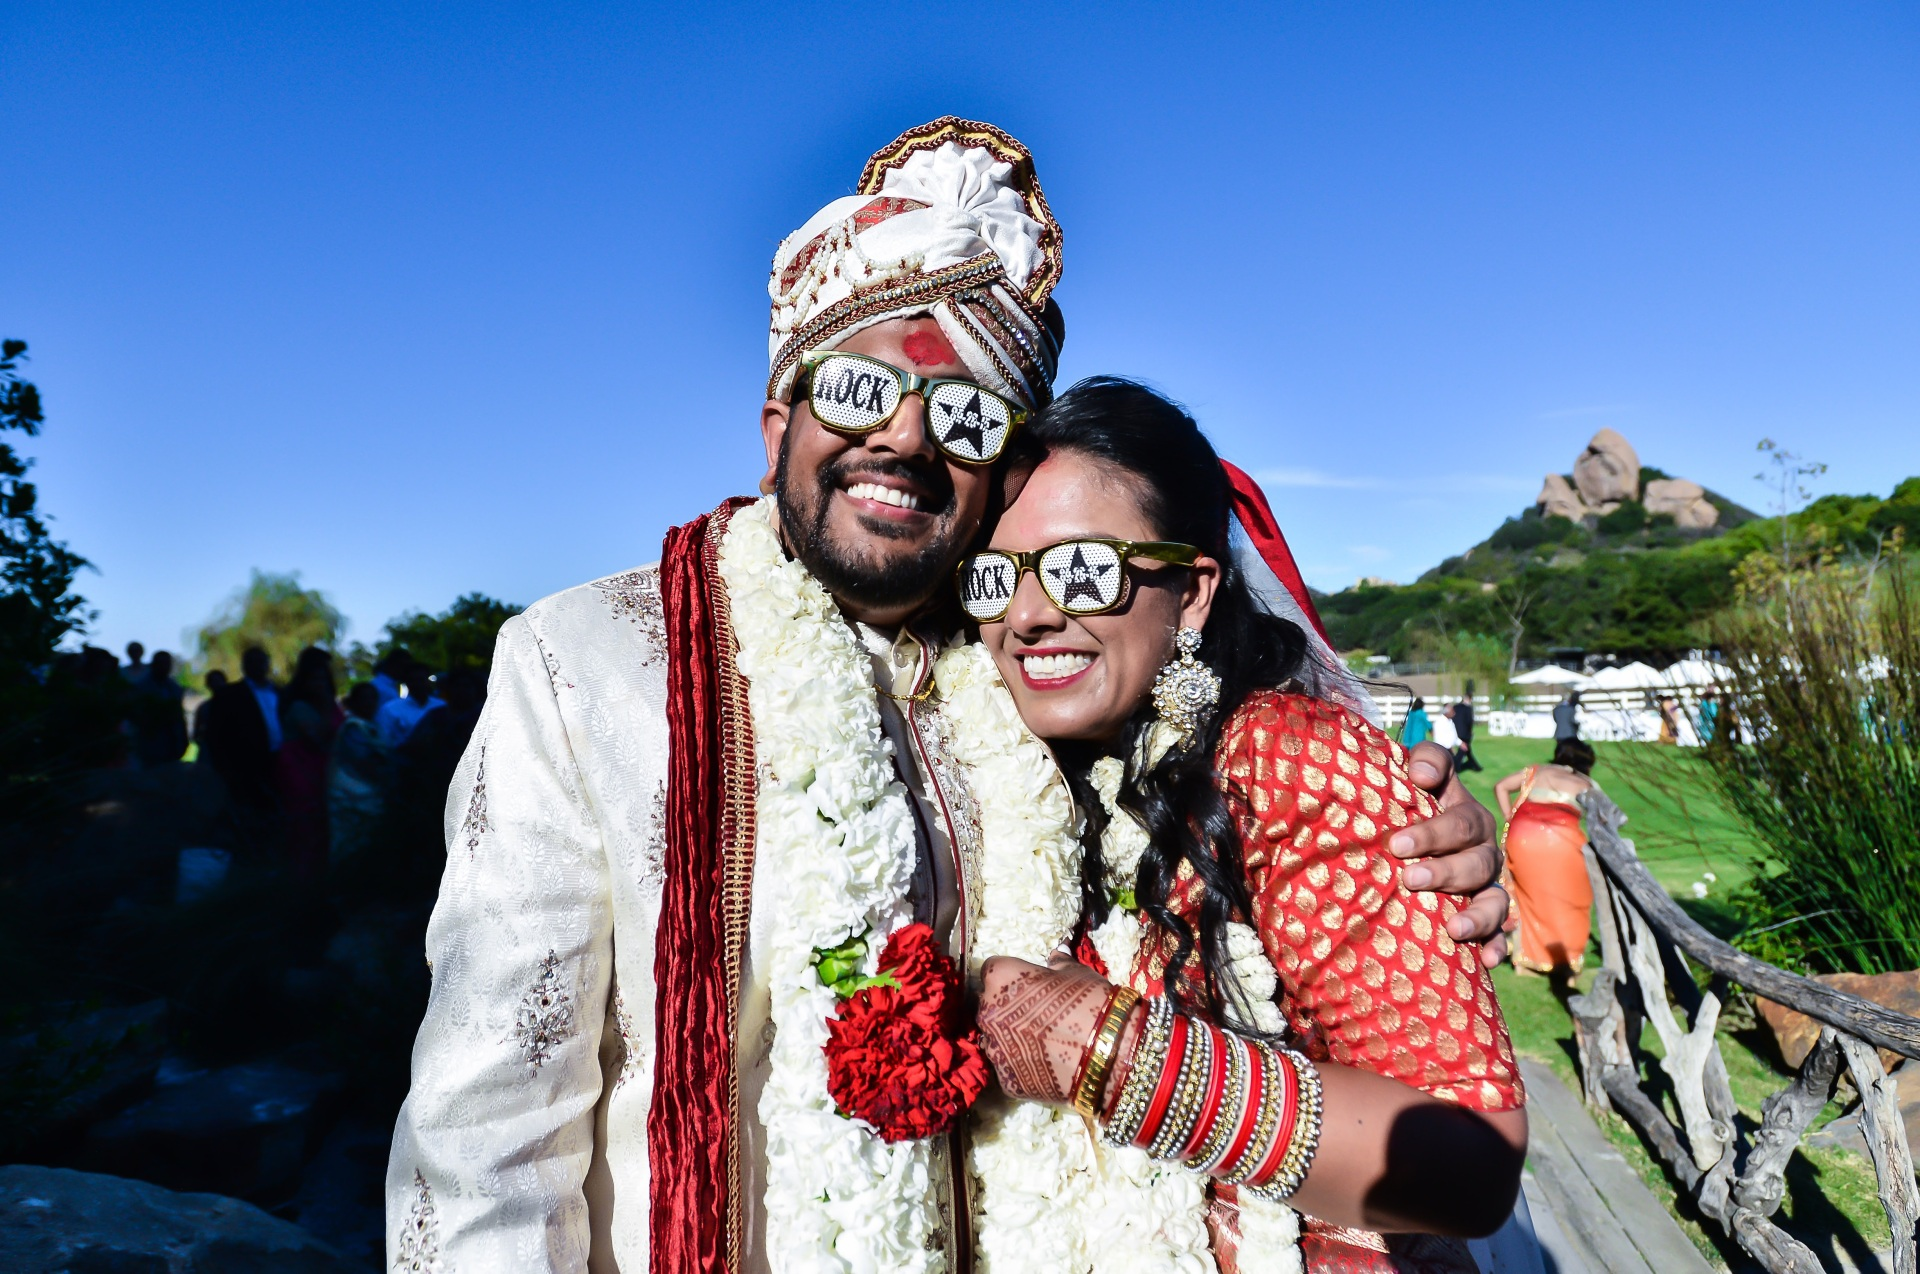 Indian bride and groom wearing funny sunglasses, happily posing for the camera at their Hindu wedding